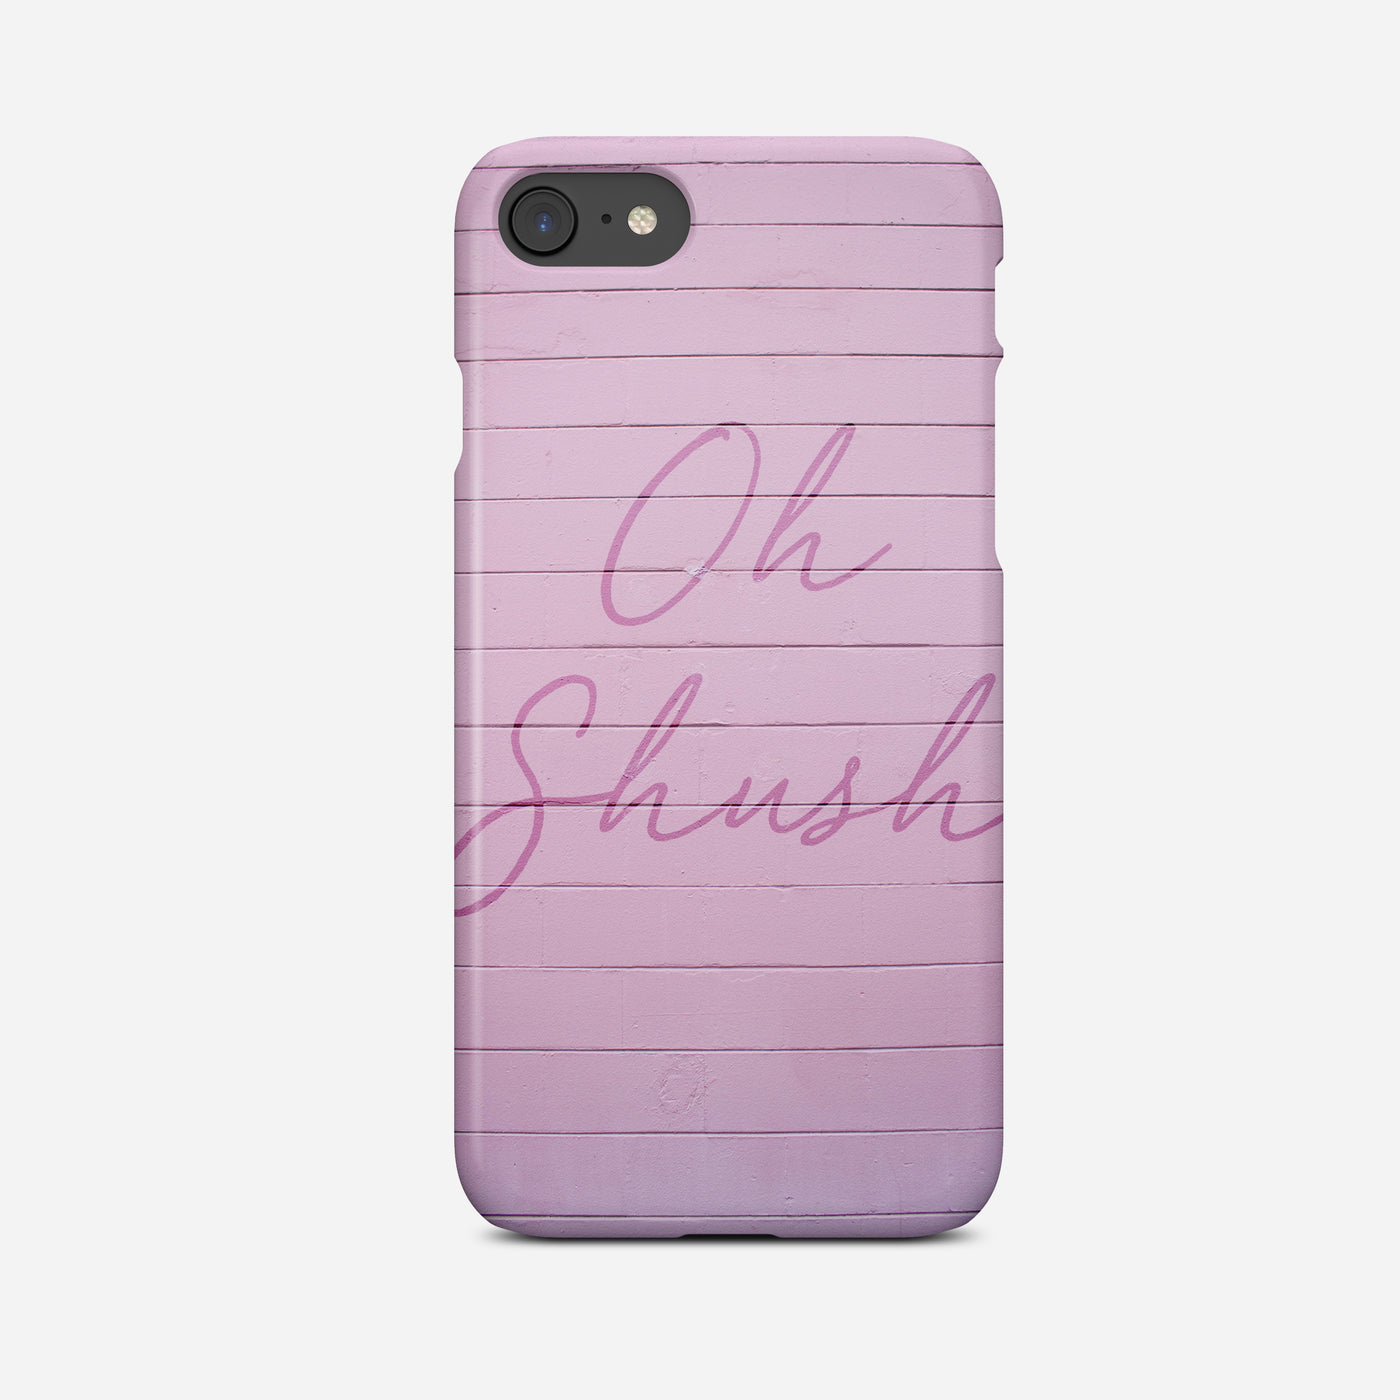 Oh Shush Pink Phone Case - Pretty in Print Art